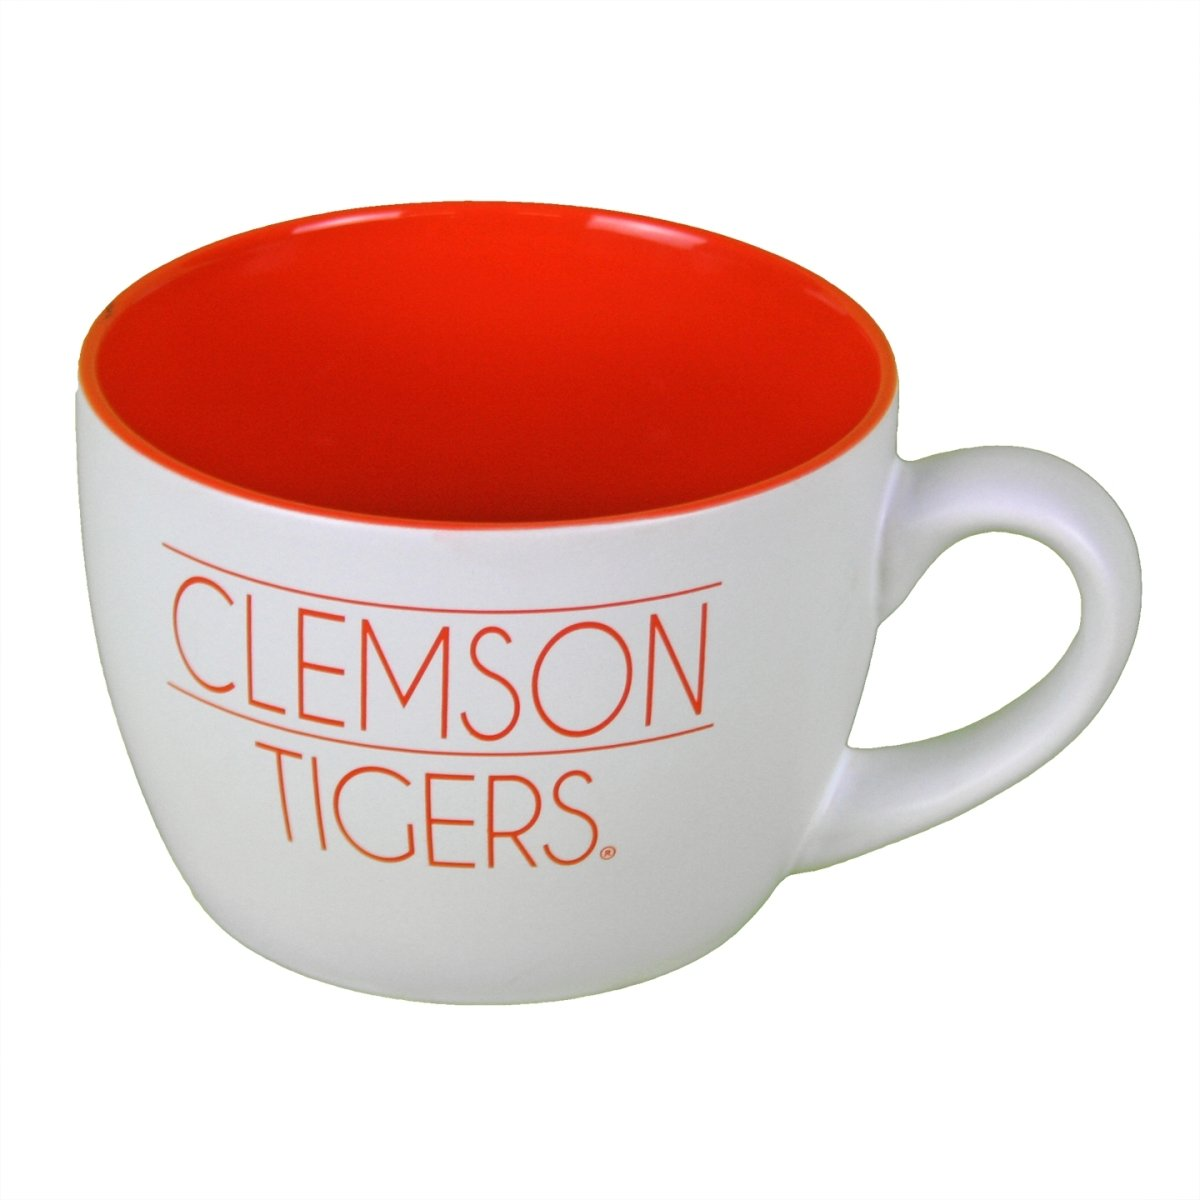 18 Oz Matte White Bolzano Mug With Orange Paw & Clemson Tigers - Mr. Knickerbocker